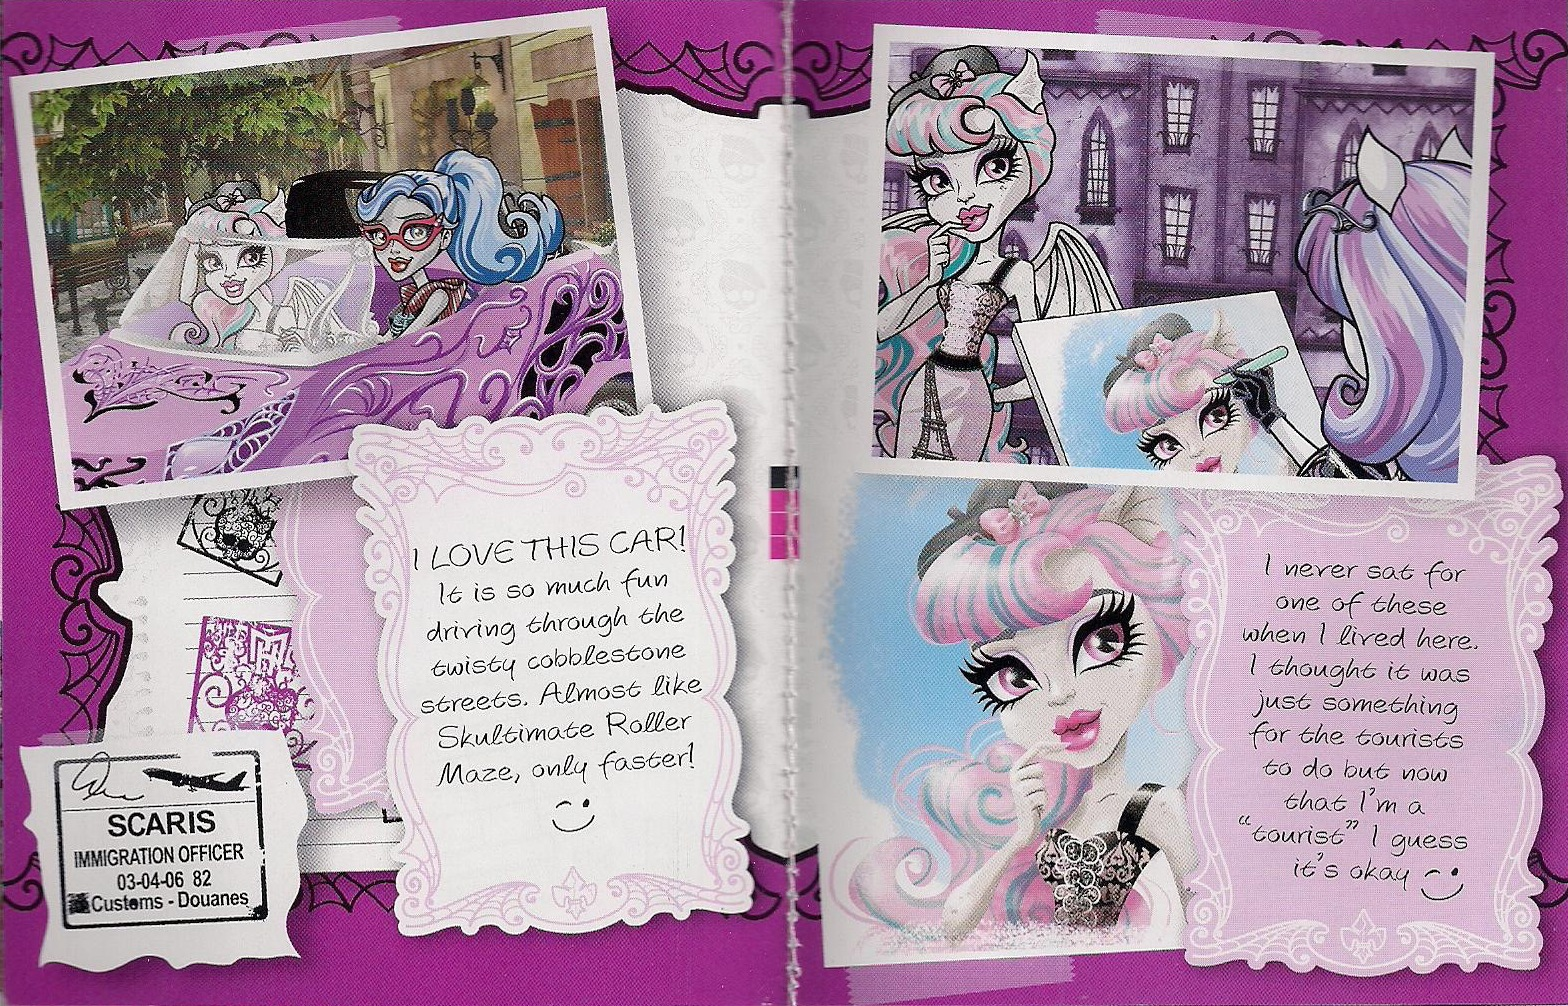 http://images.wikia.com/monsterhigh/pl/images/3/3d/RochelleSCOFdiary3.jpg